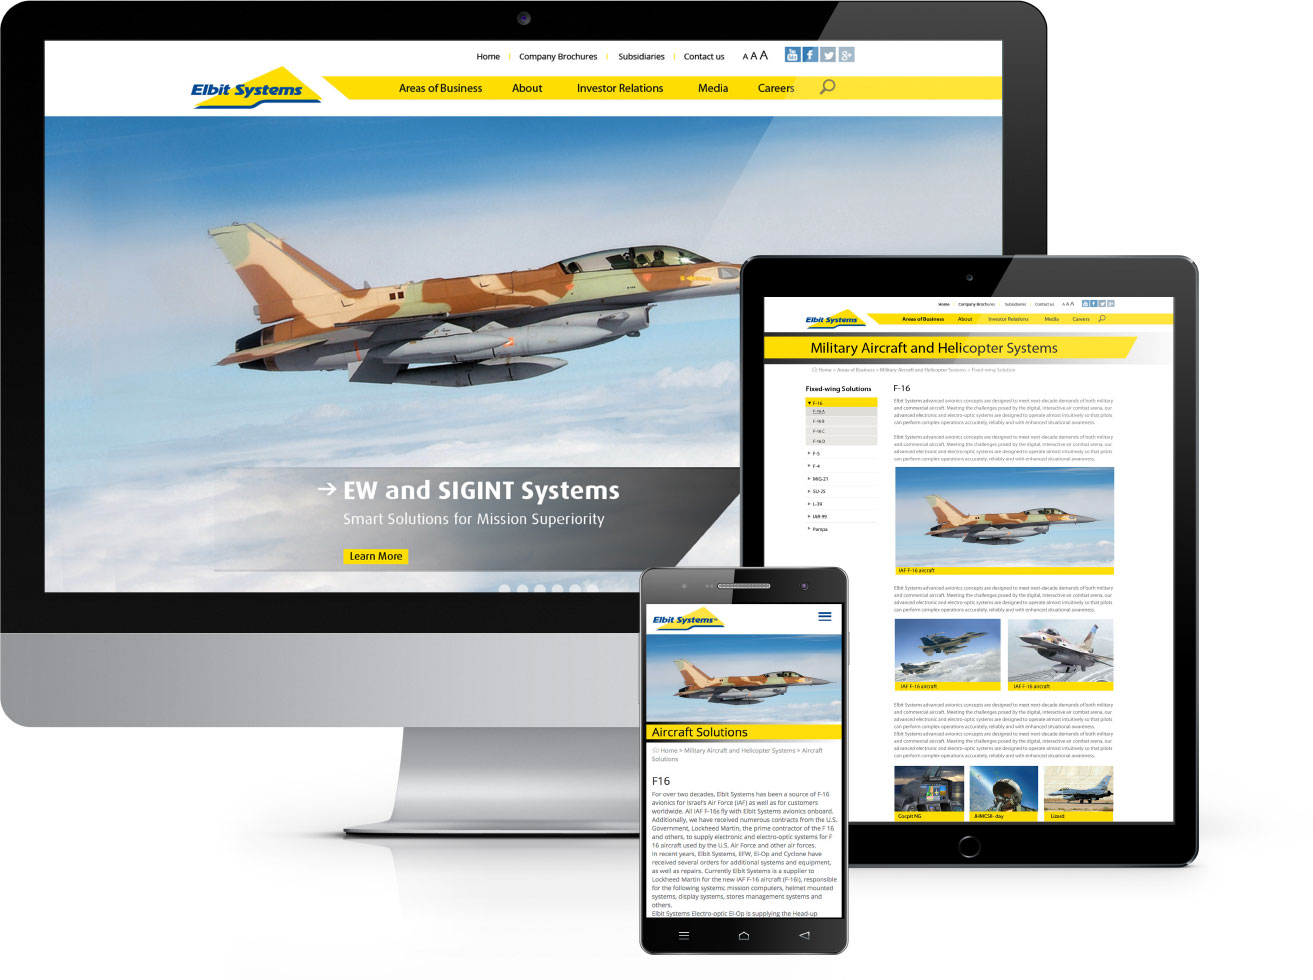 DI Branding & Design - customers - ELBIT SYSTEMS